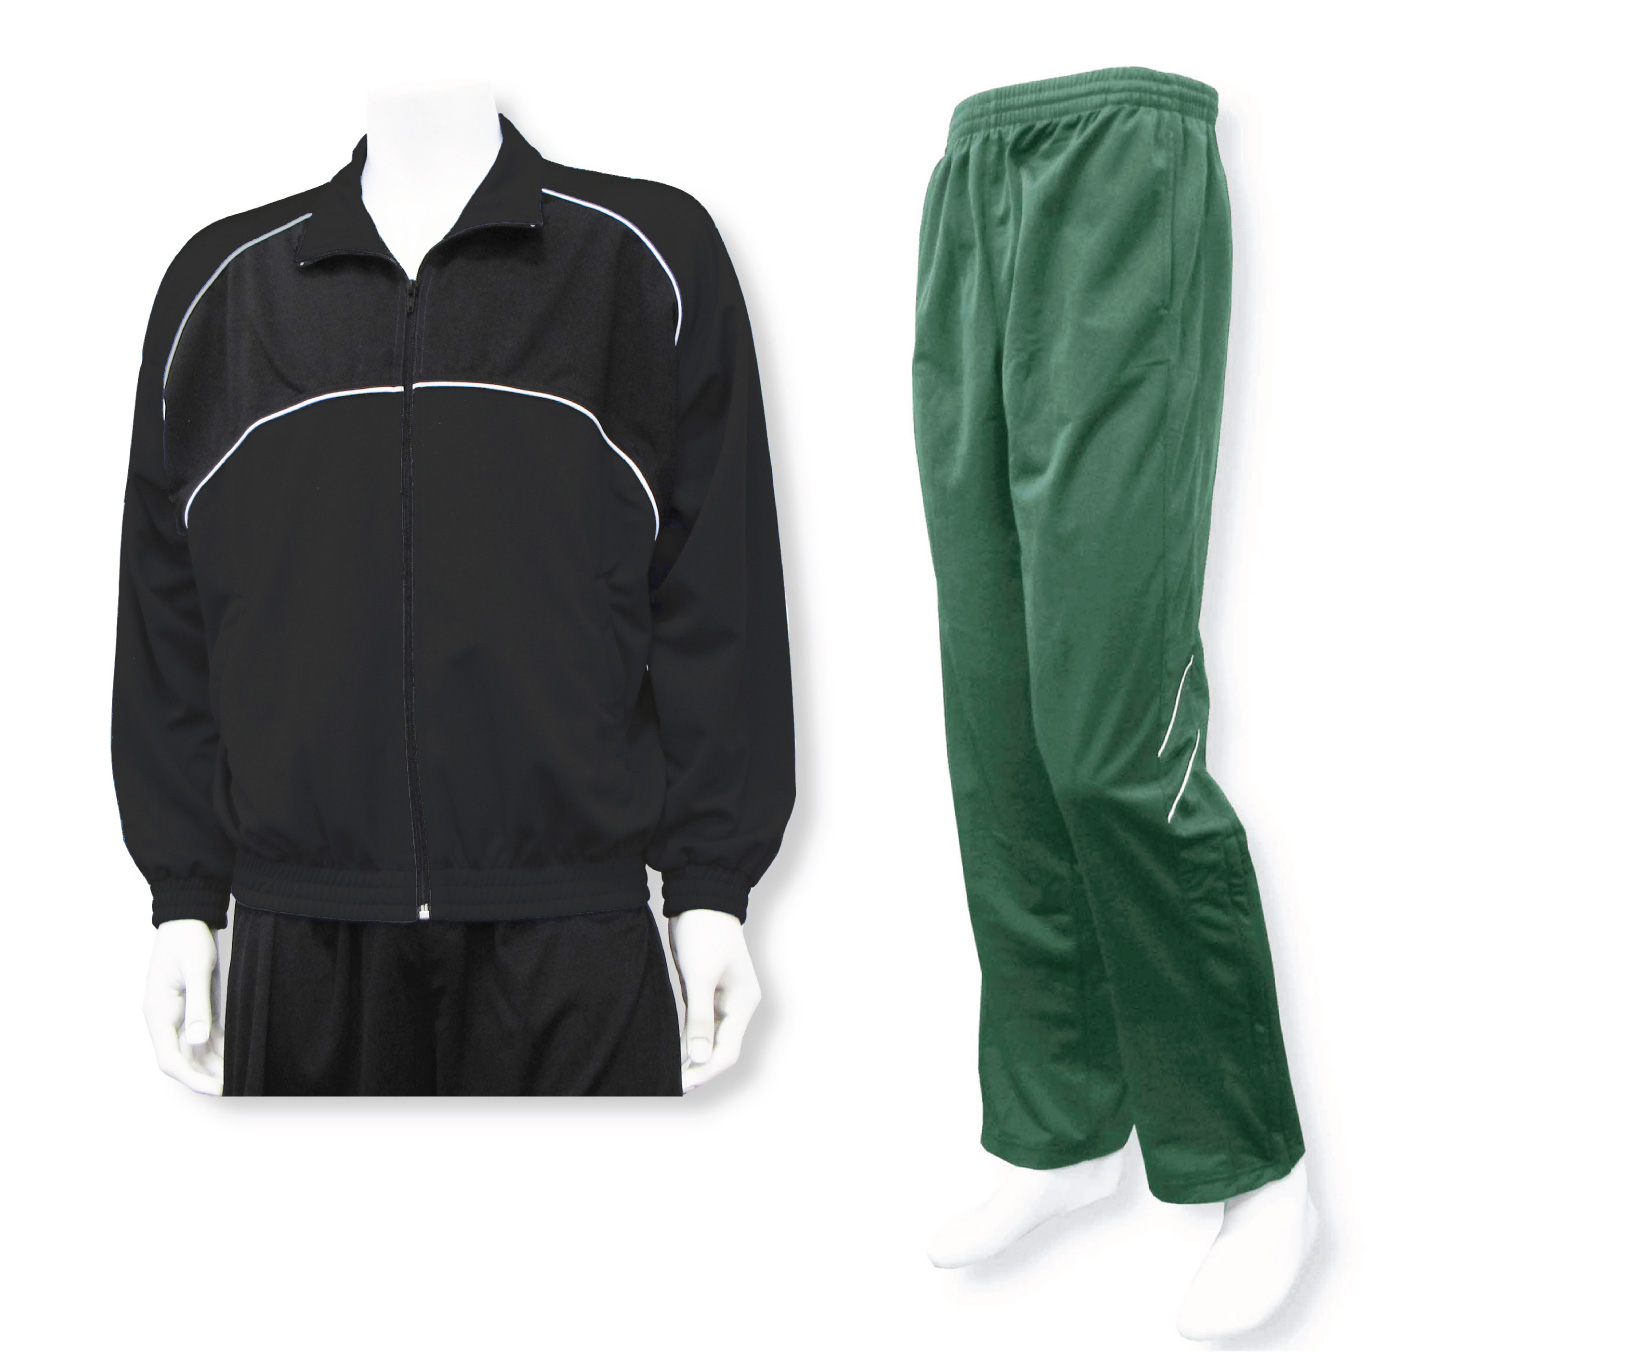 men's casual warmup set with black jacket and forest pants by Code Four Athletics